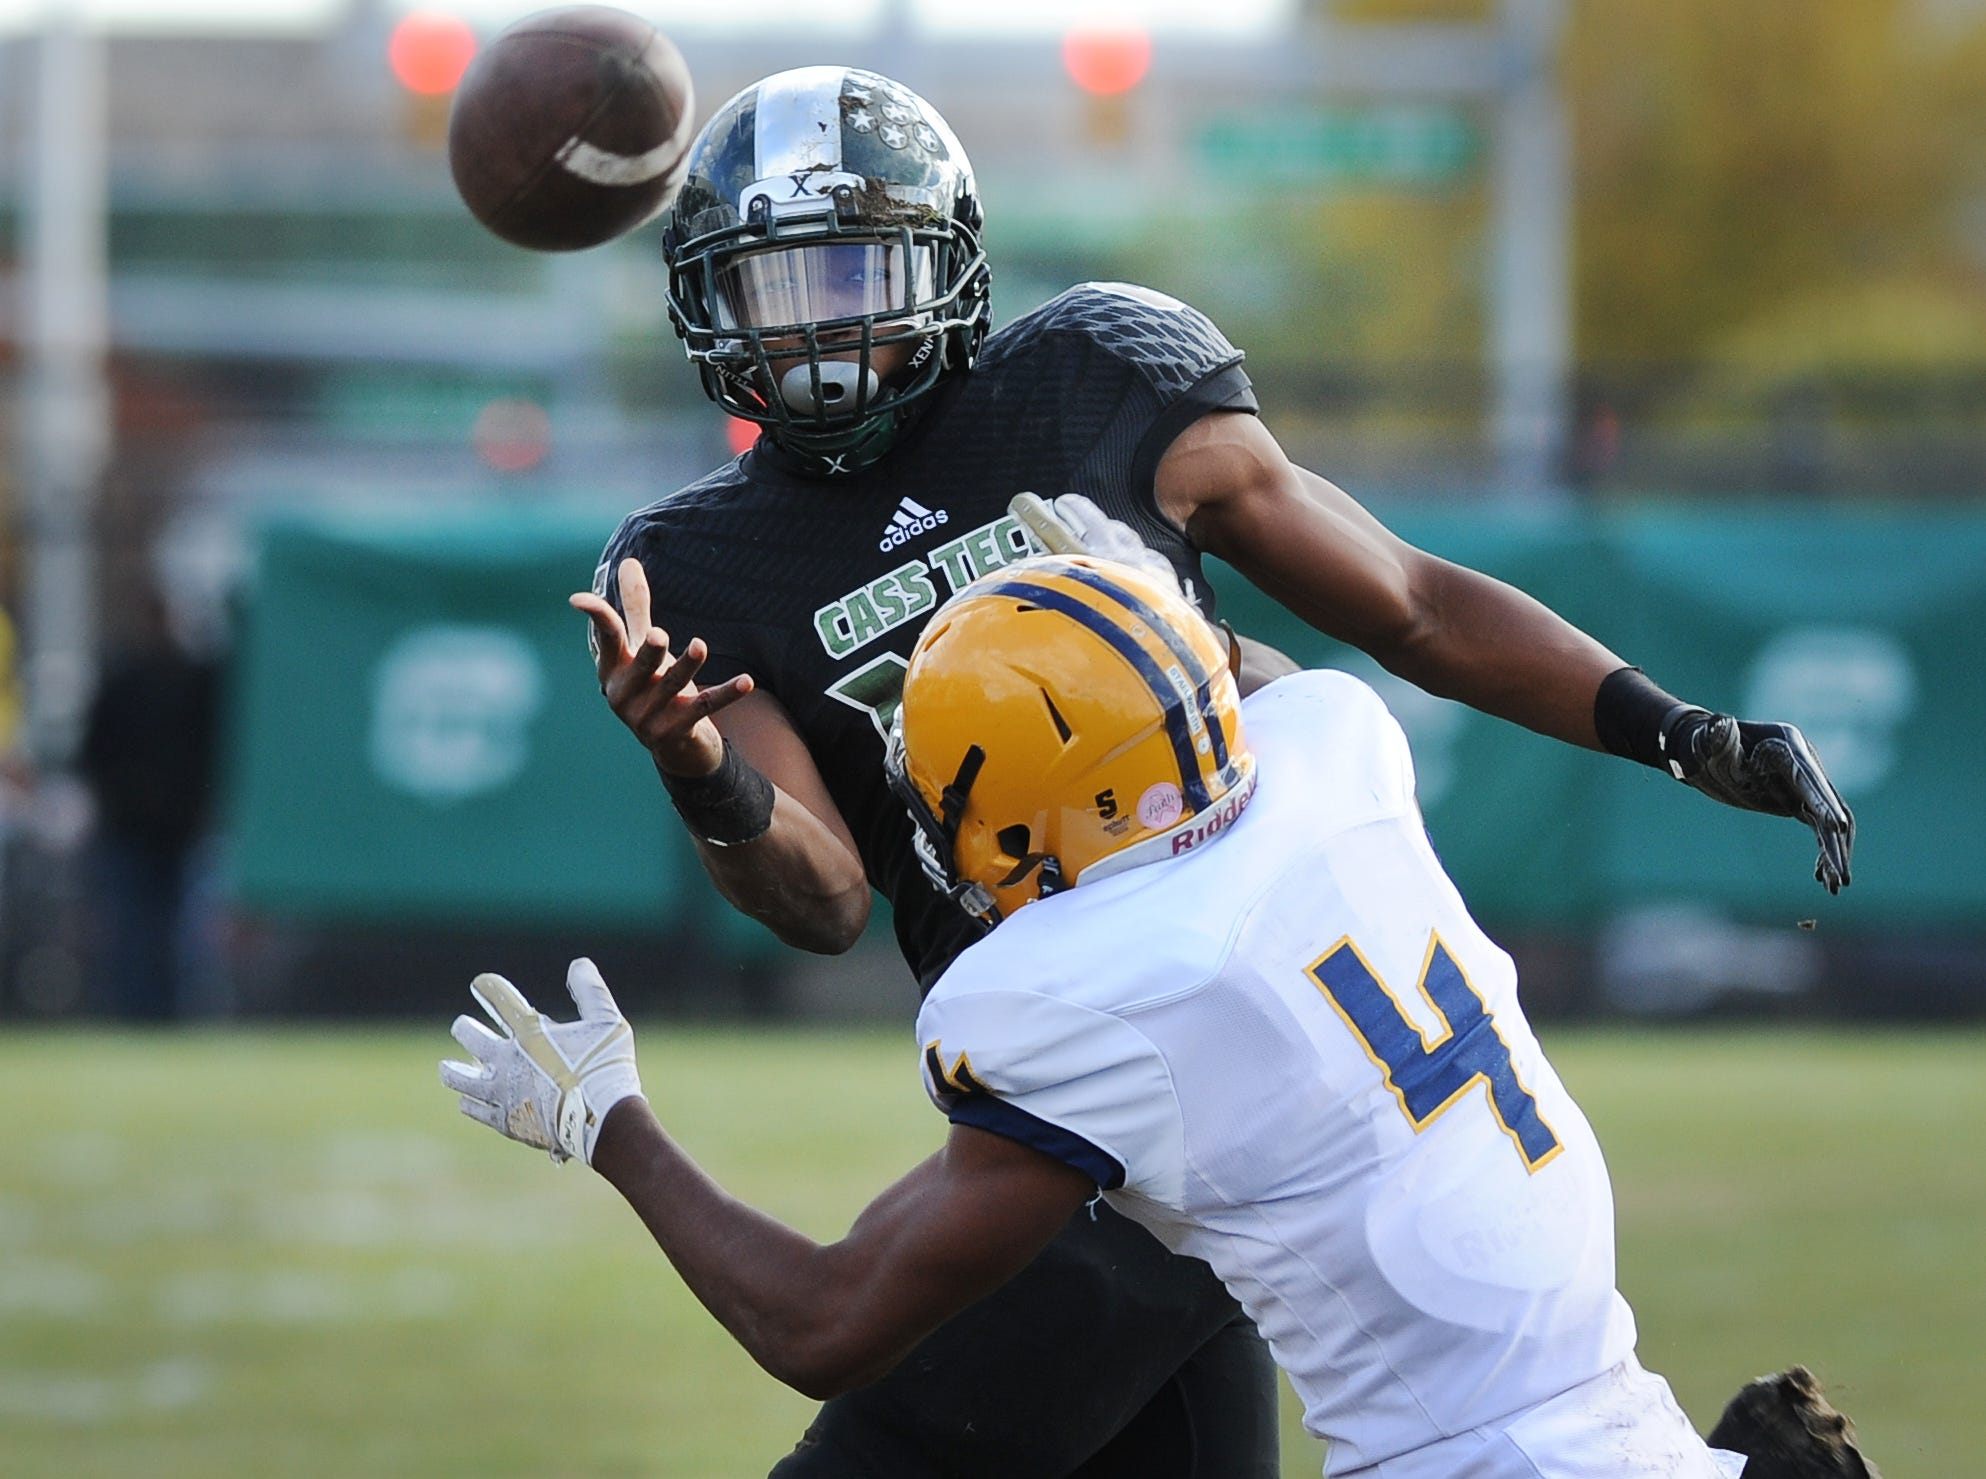 Cass Technical High School quarterback Jalen Graham (17) throws an interception in the fourth quarter against Dearborn Fordson High School in Detroit on Saturday November 3, 2018.